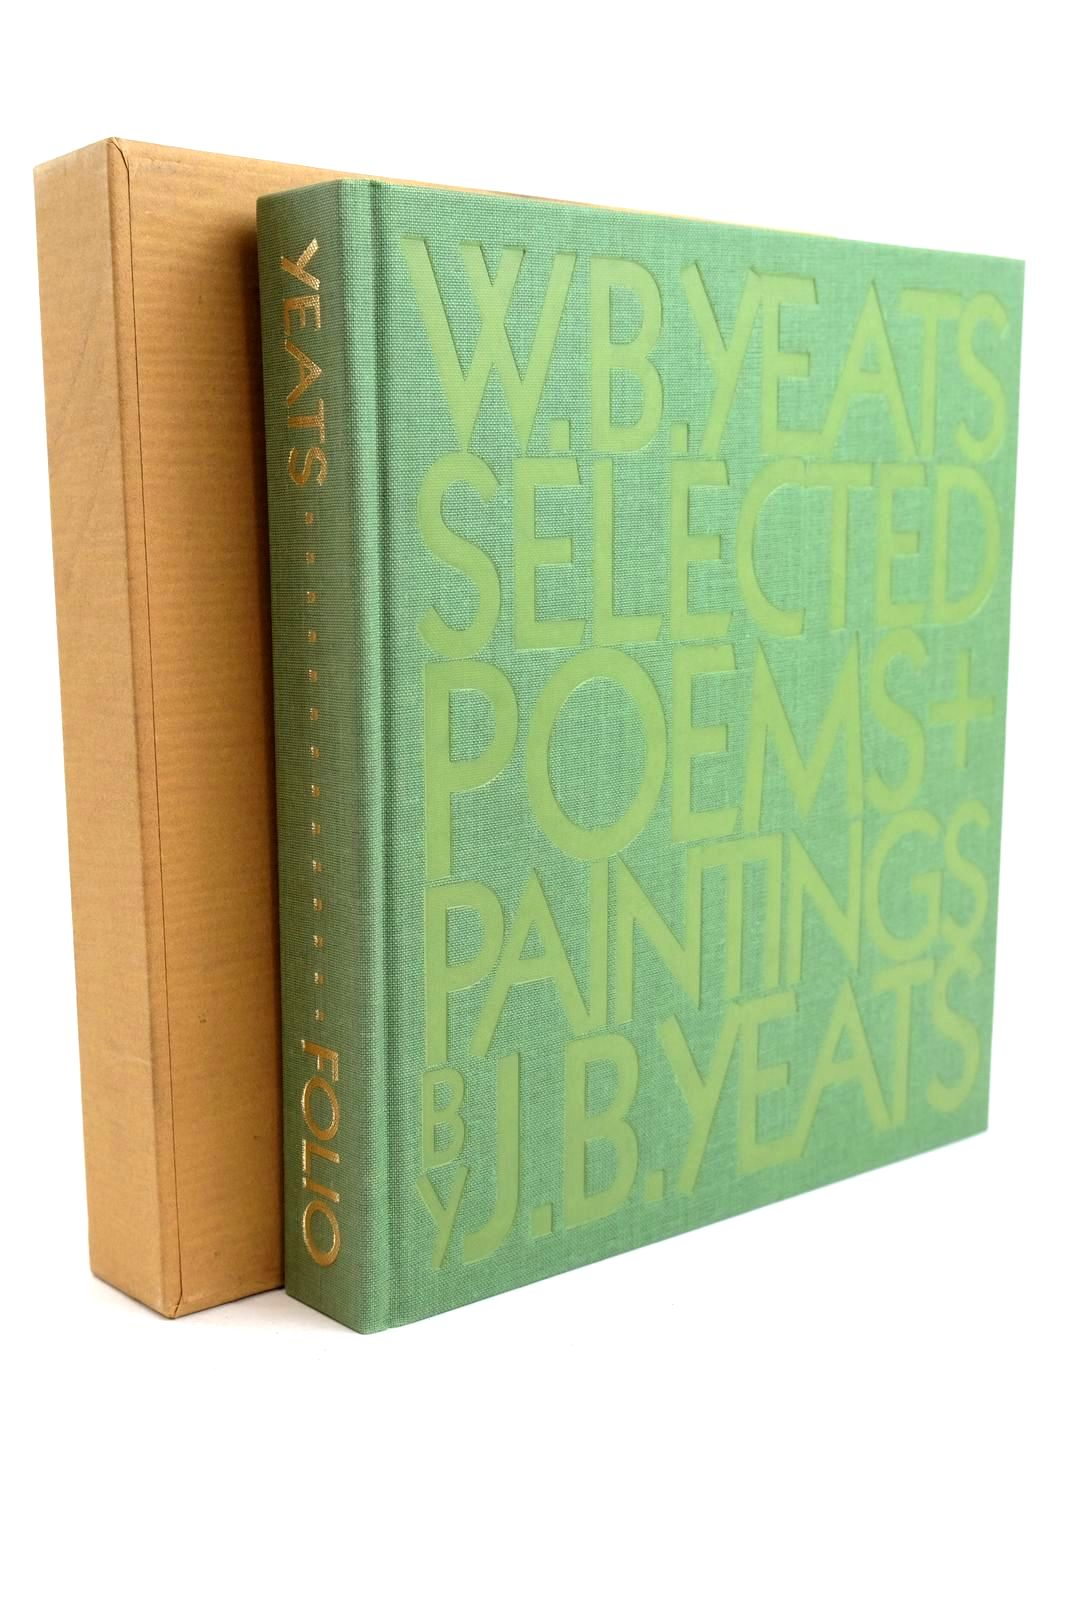 Photo of SELECTED POEMS written by Yeats, W.B. illustrated by Yeats, Jack B. published by Folio Society (STOCK CODE: 1320469)  for sale by Stella & Rose's Books